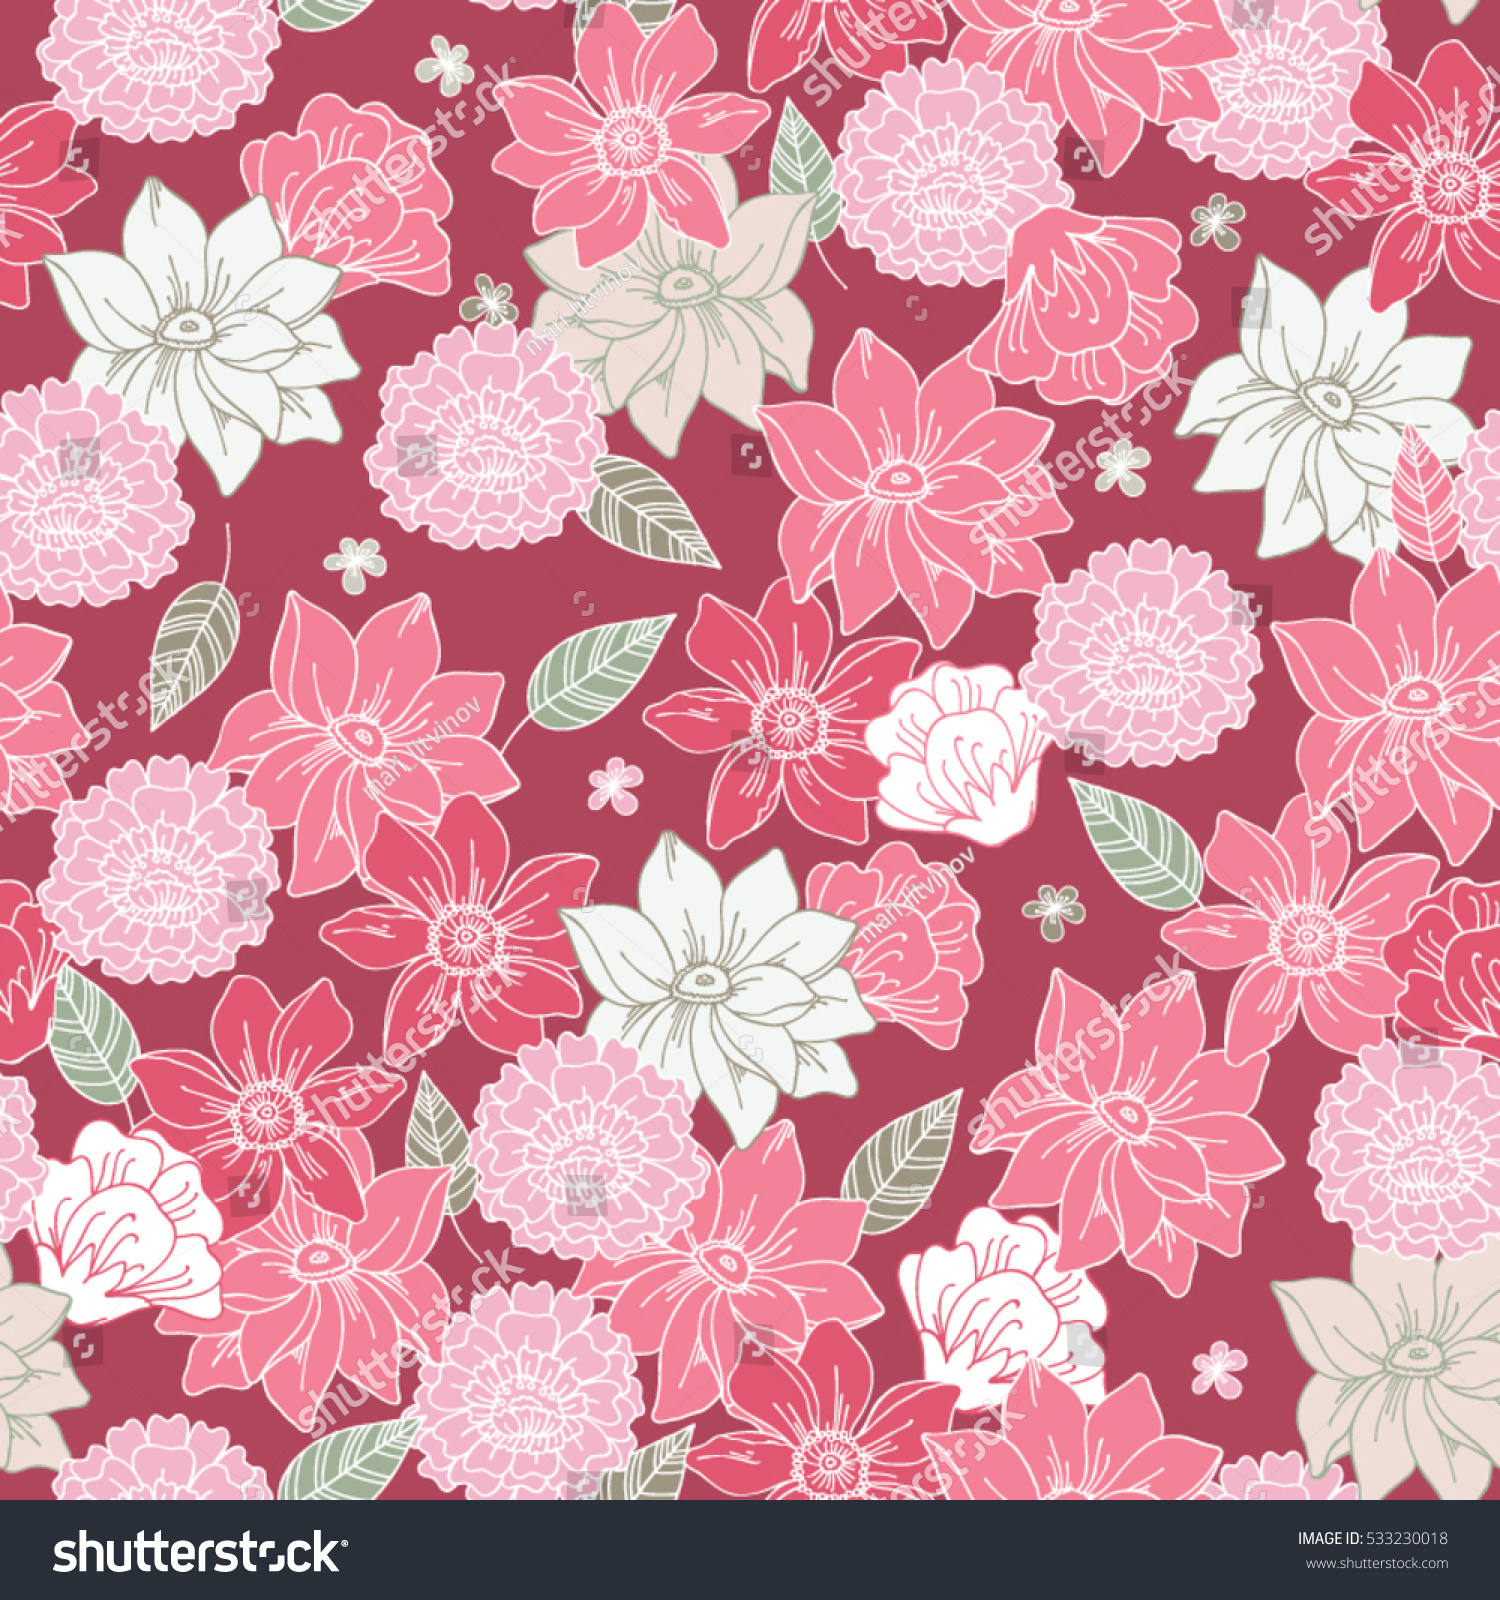 Pink floral seamless vector background floral hrysanthemum seamless - Floral Vector Seamless Pattern With Daisy Lilly Chrysanthemum Graphic Flowers On Pale Fuchsia Background